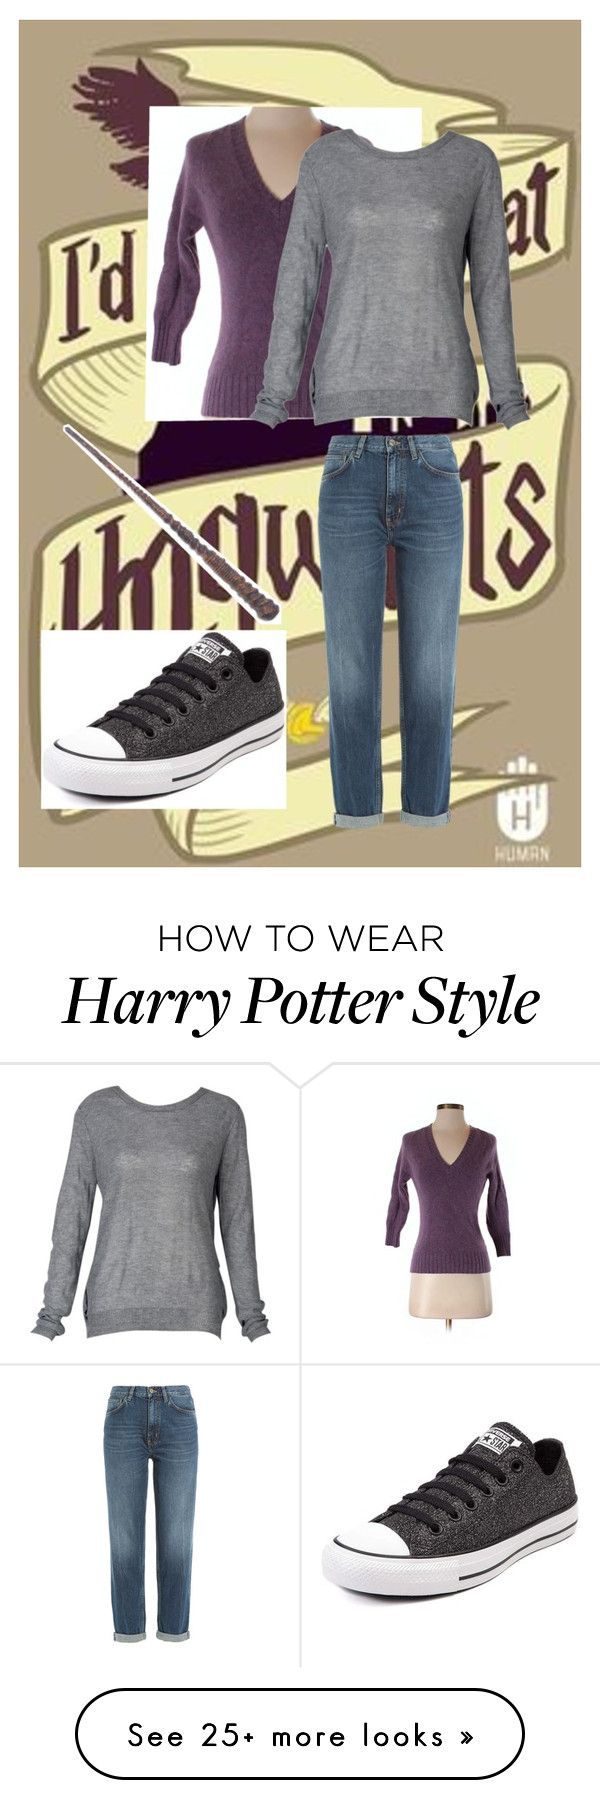 """Harry Potter"" by mynameisblrryface on Polyvore featuring Gap, M.i.h Jeans and Converse"